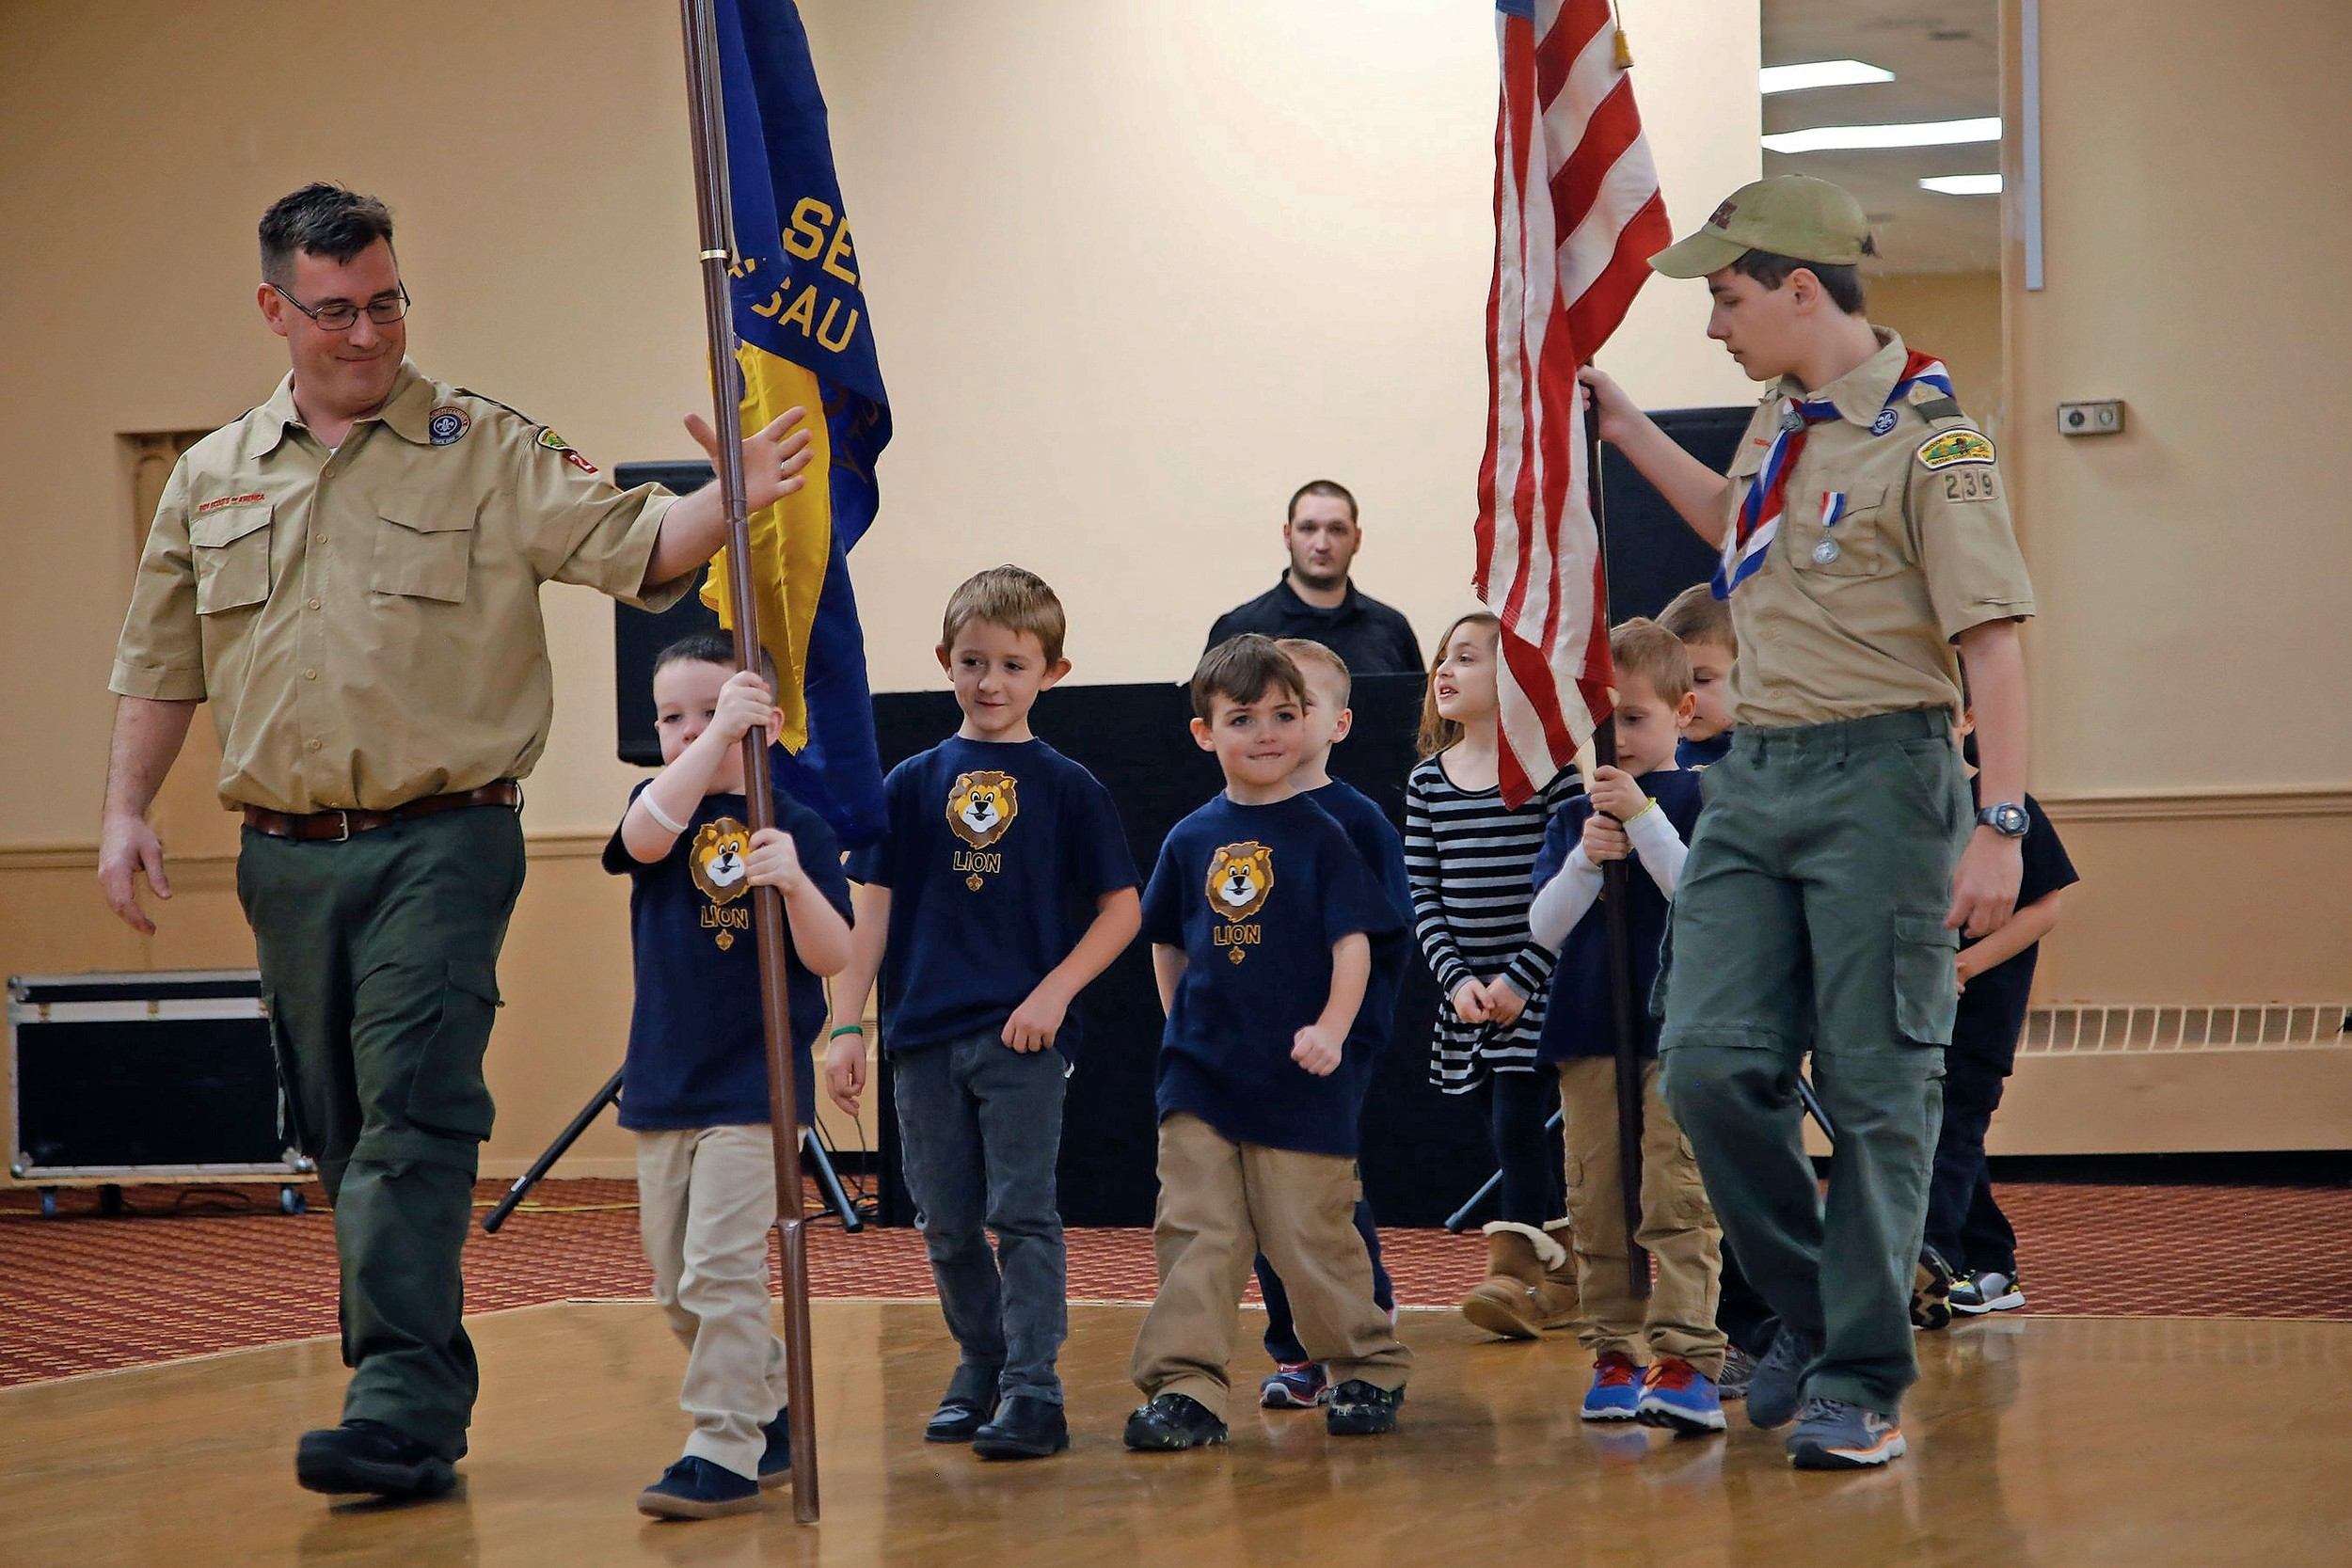 The Lion Scouts Color Guard kicked off the festivities at the Seaford Boy Scout Pack 239 Blue and Gold Banquet on March 5.